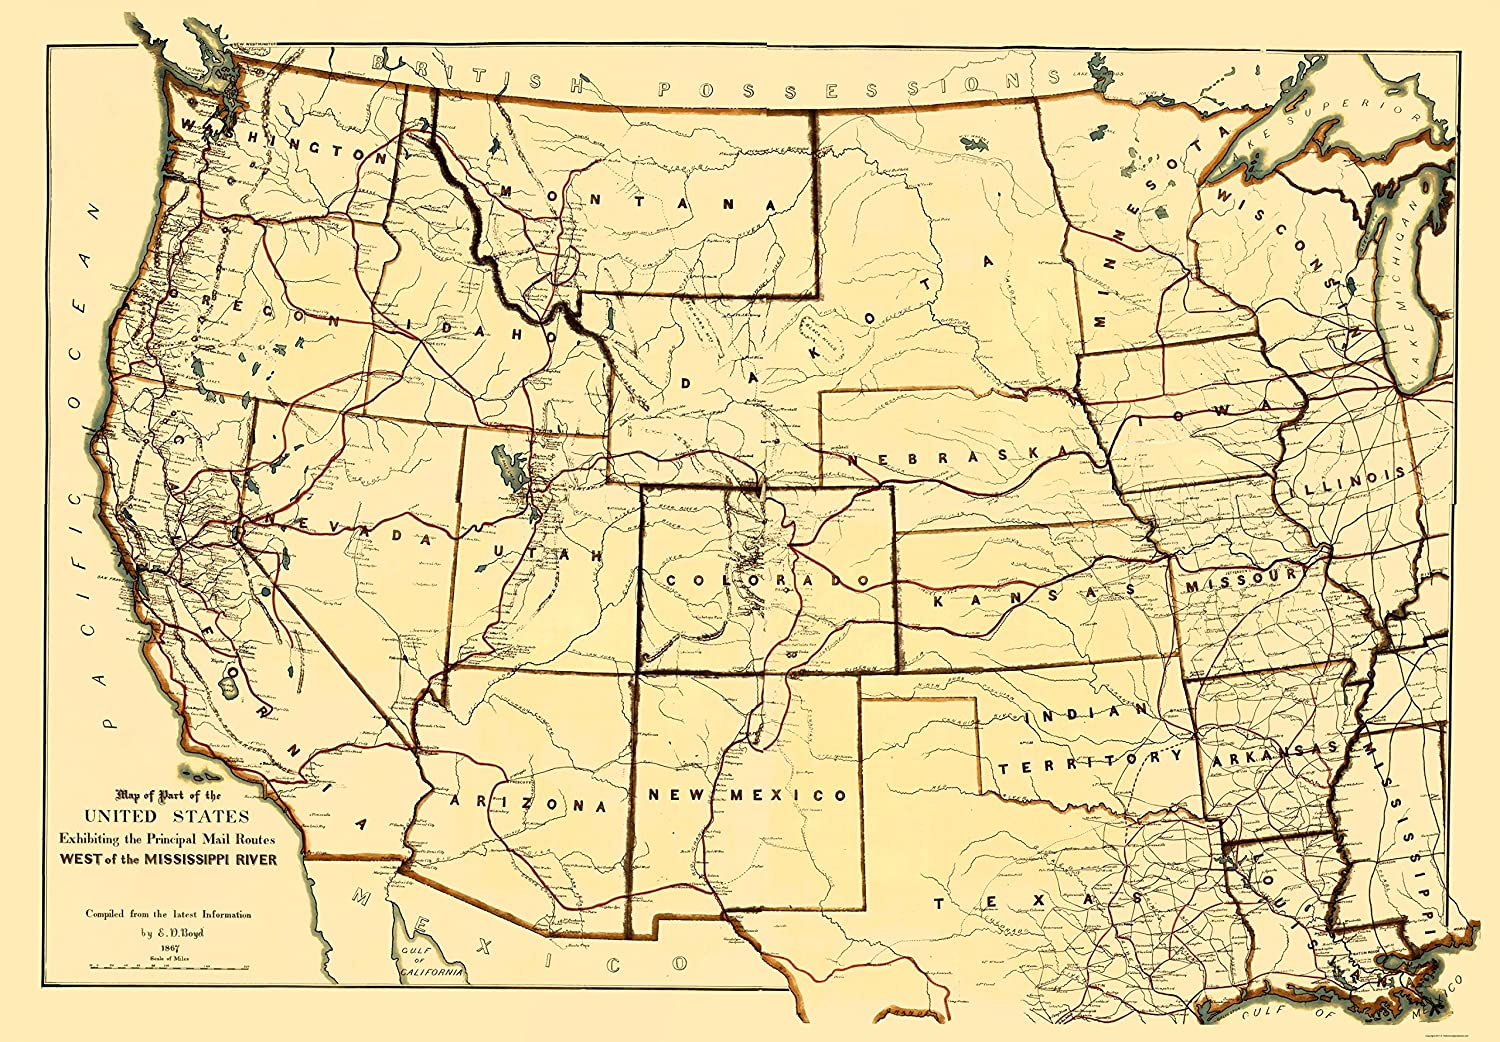 Amazon.com: Old State Map - Mail Routes West of the Mississippi ...